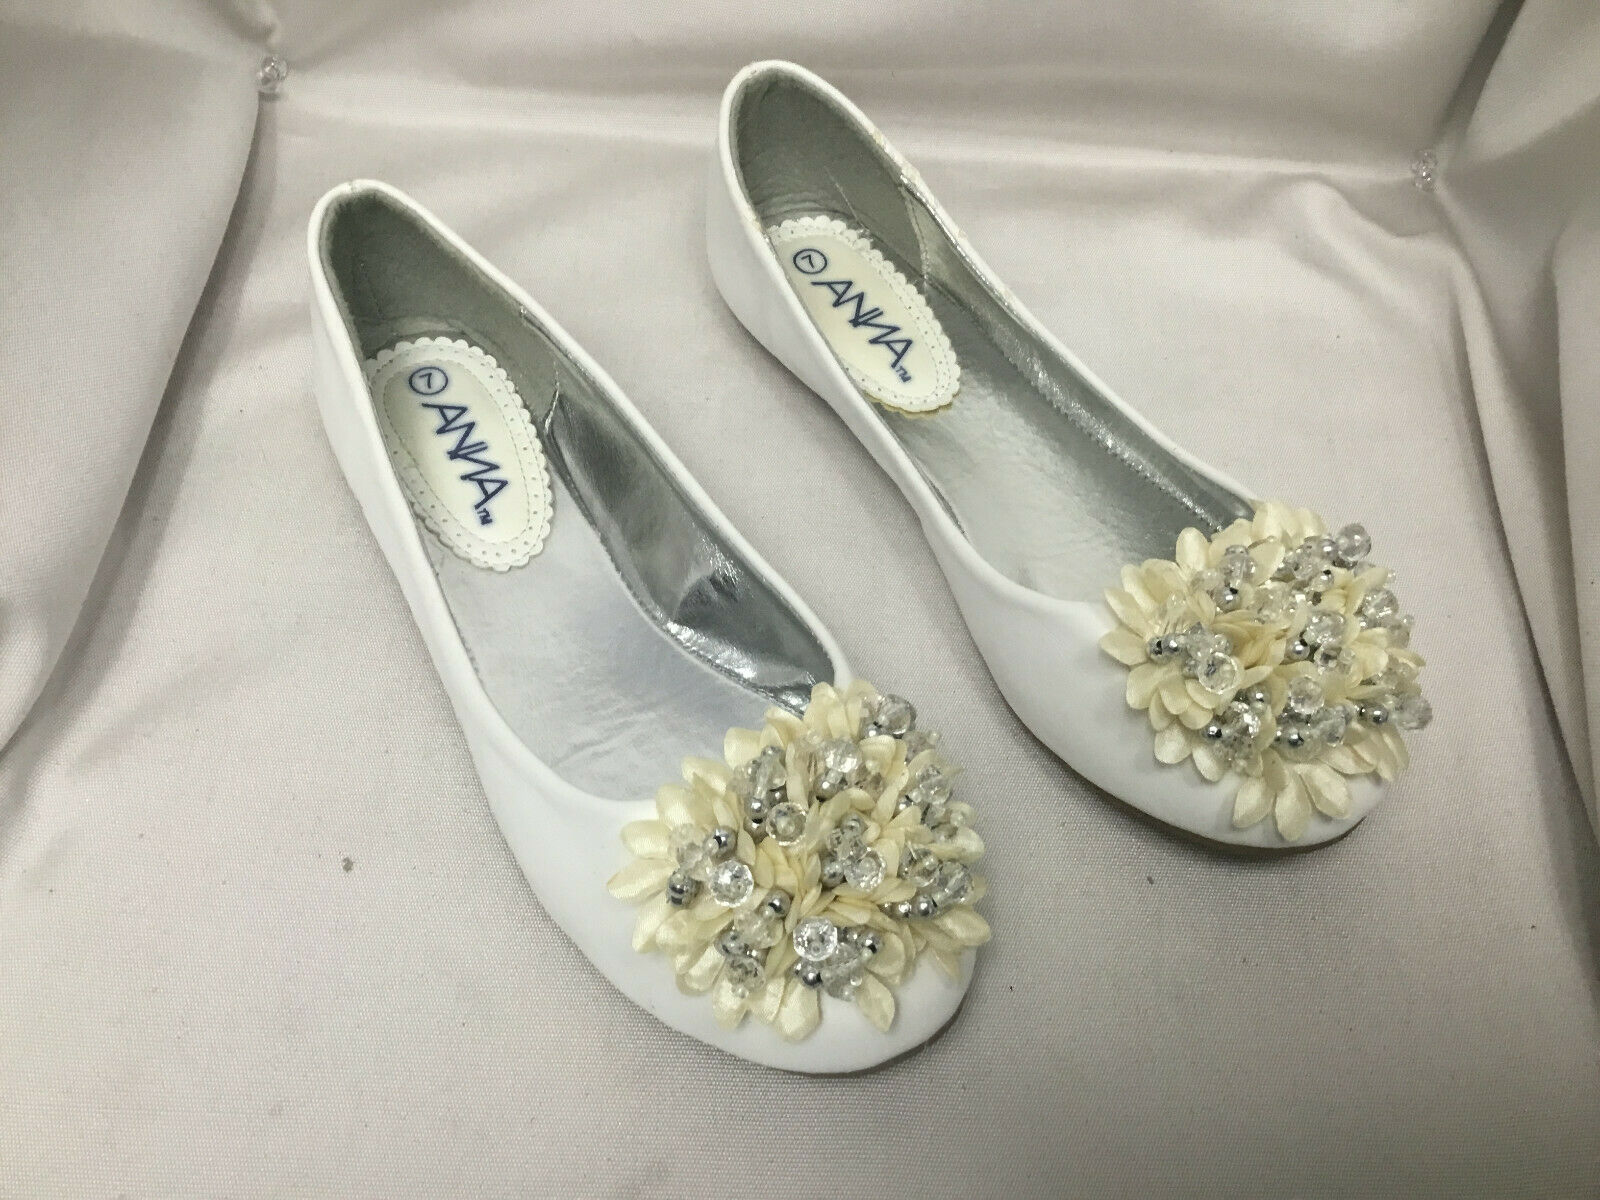 NEW White Round Toe Faux Leather Flat Ballet Pumps Slip On Women Shoes SIZE 7